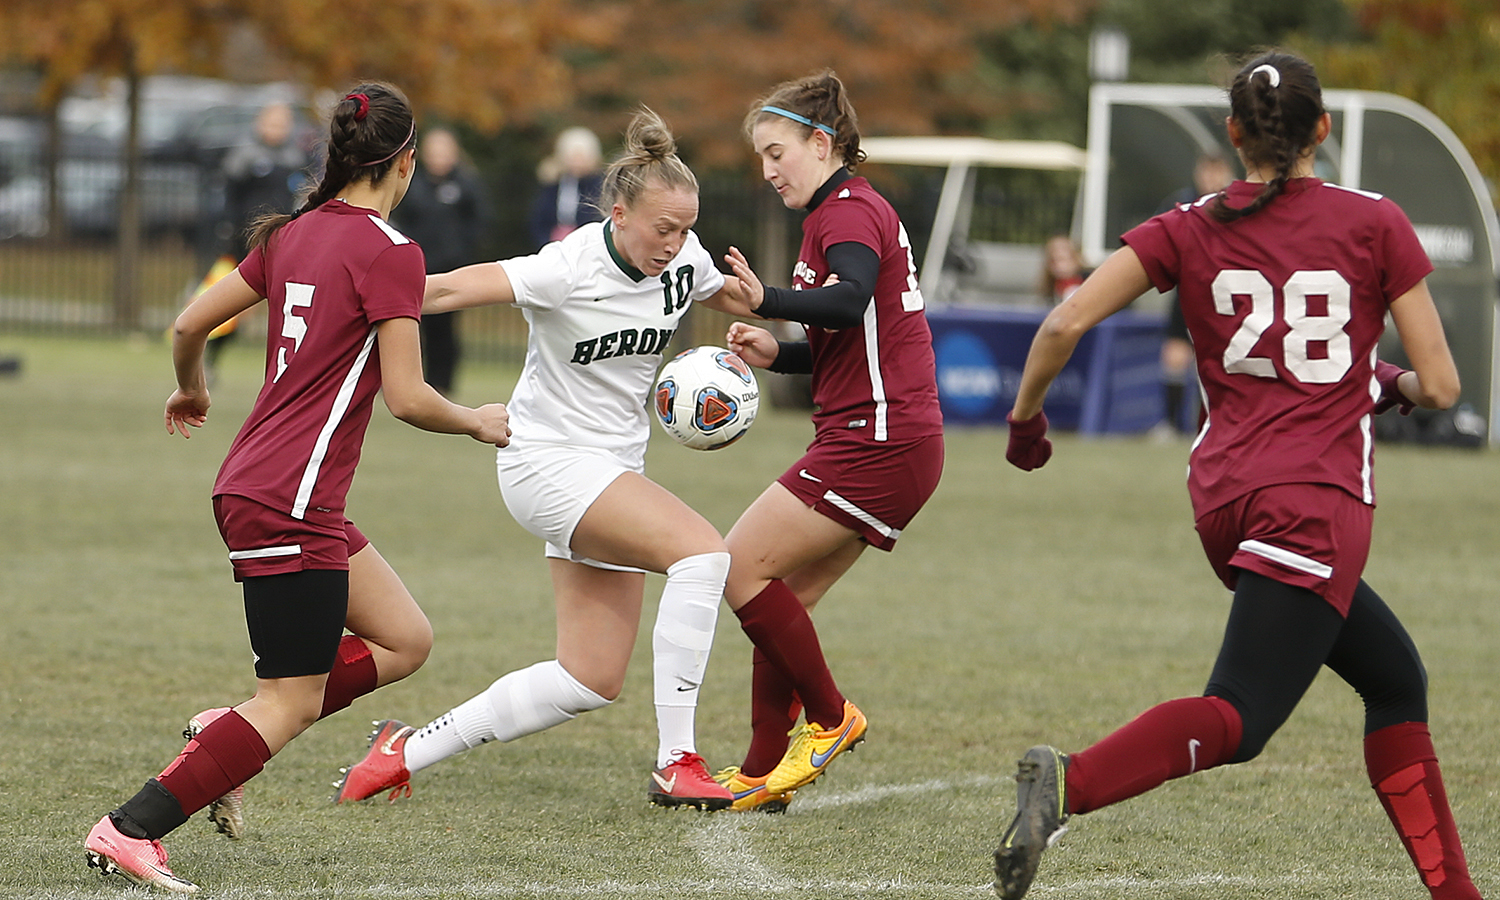 Evie Manning '18 weaves through the defense during William Smith's 2-0 win over Swarthmore University as part of the 2017 NCAA Women's Soccer Championship game.